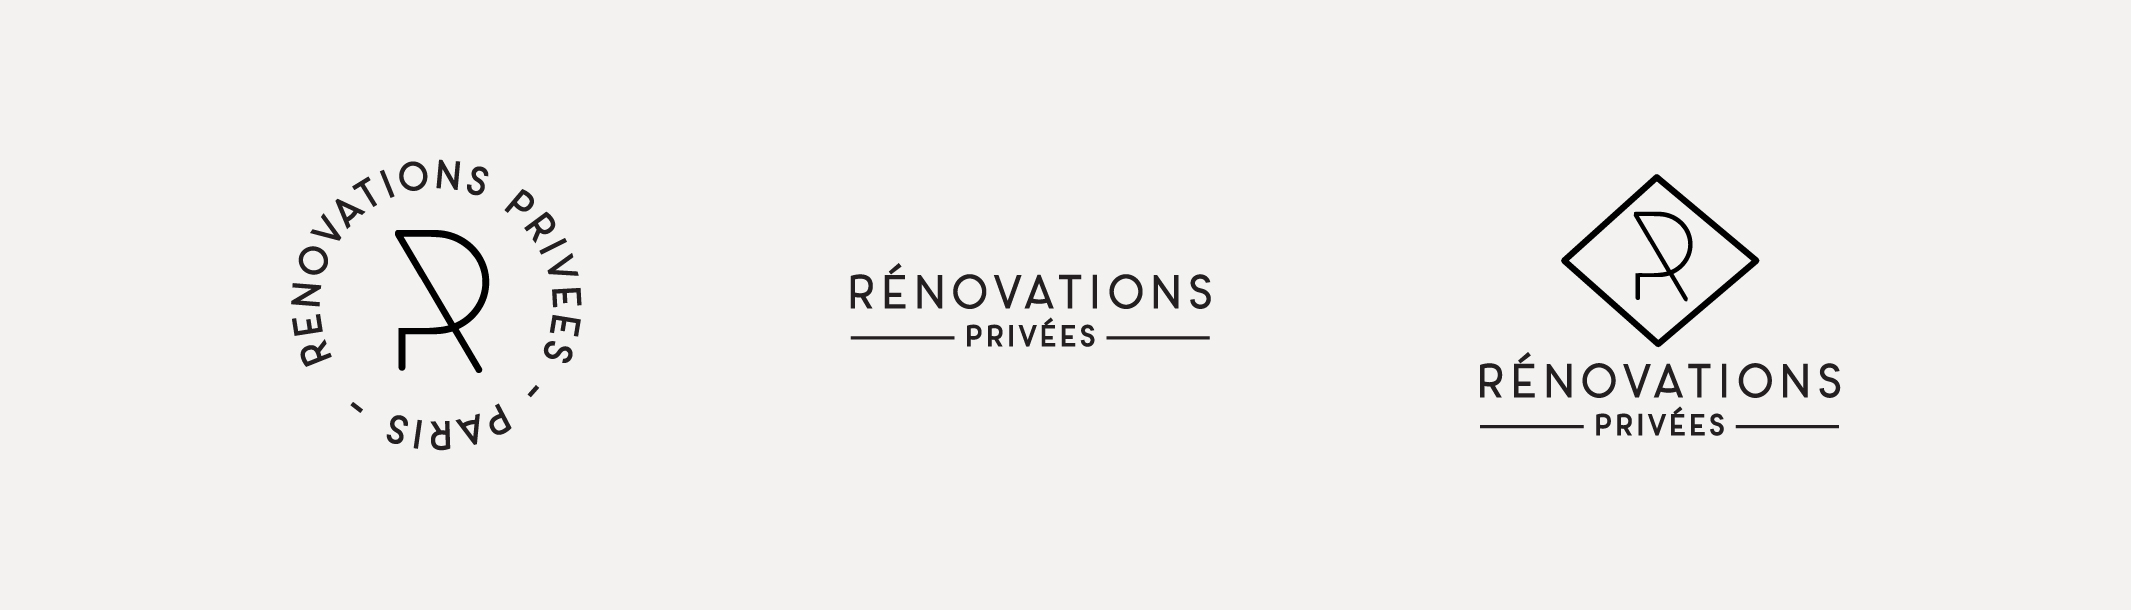 mariebabeau_graphiste-freelance-independante-strasbourg-creation-logo-Renovations-Privees-Paris.-4jpg